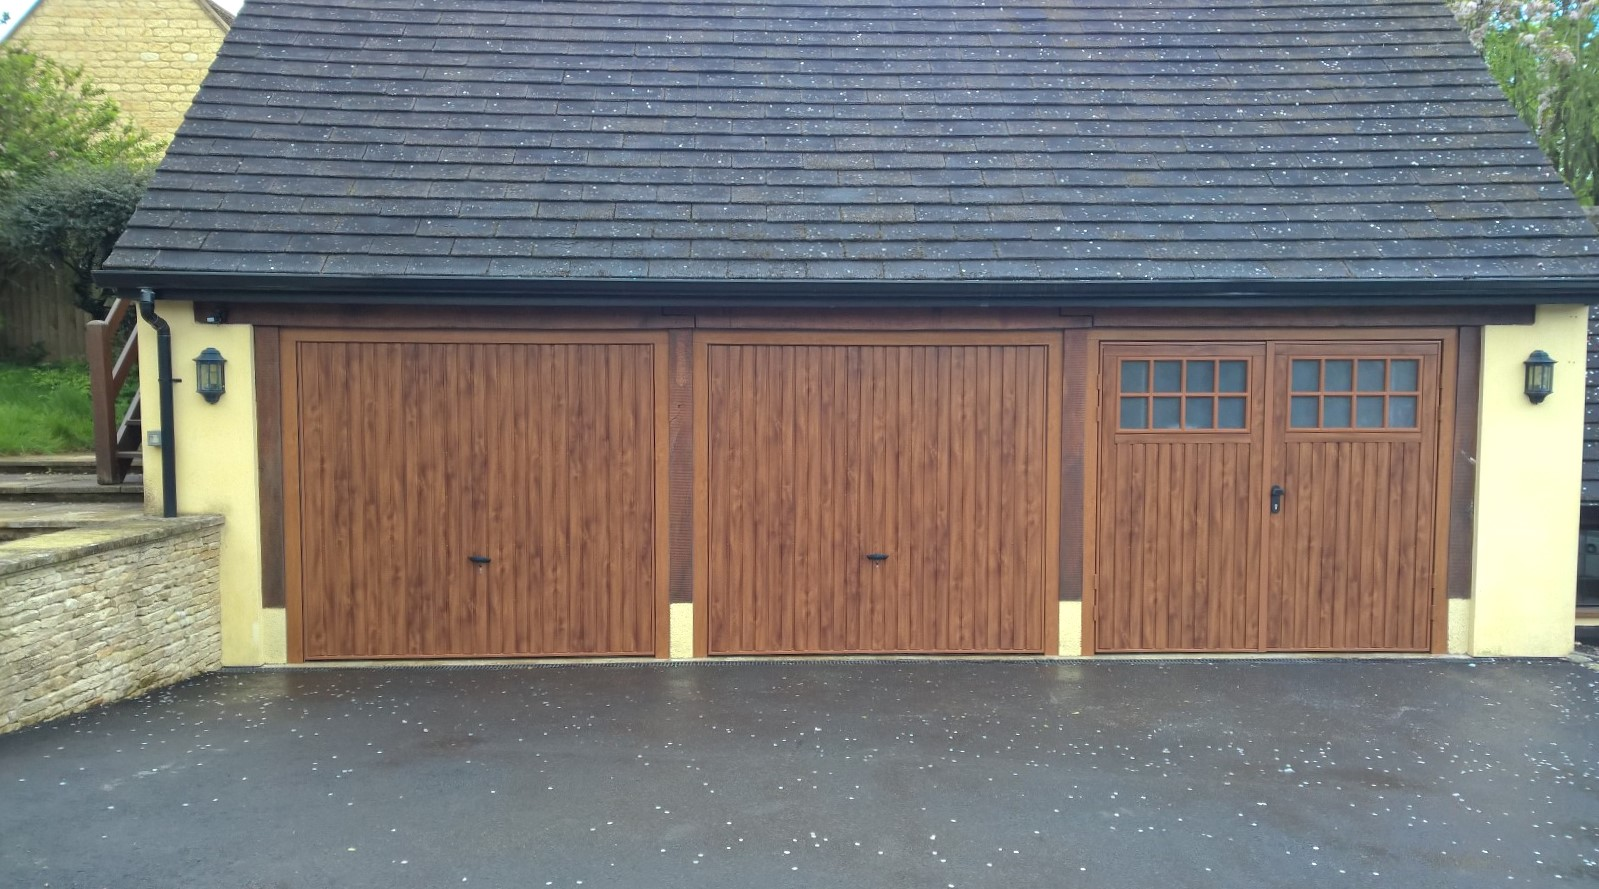 889 #A3A922 Trio / Triple Bay Golden Oak Garage Doors picture/photo Oak Garage Doors 38491599